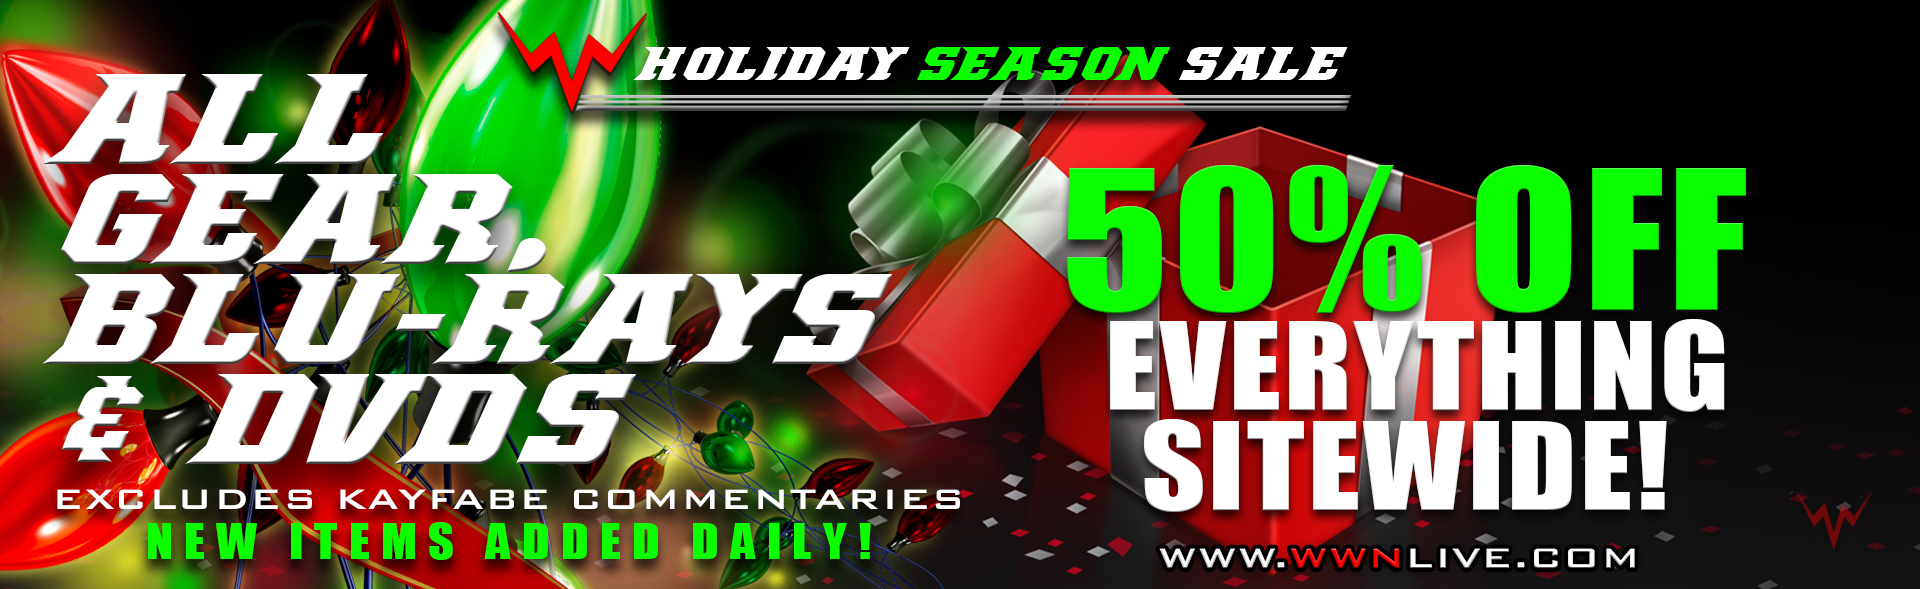 The WWN Holiday Season Sale Continues!